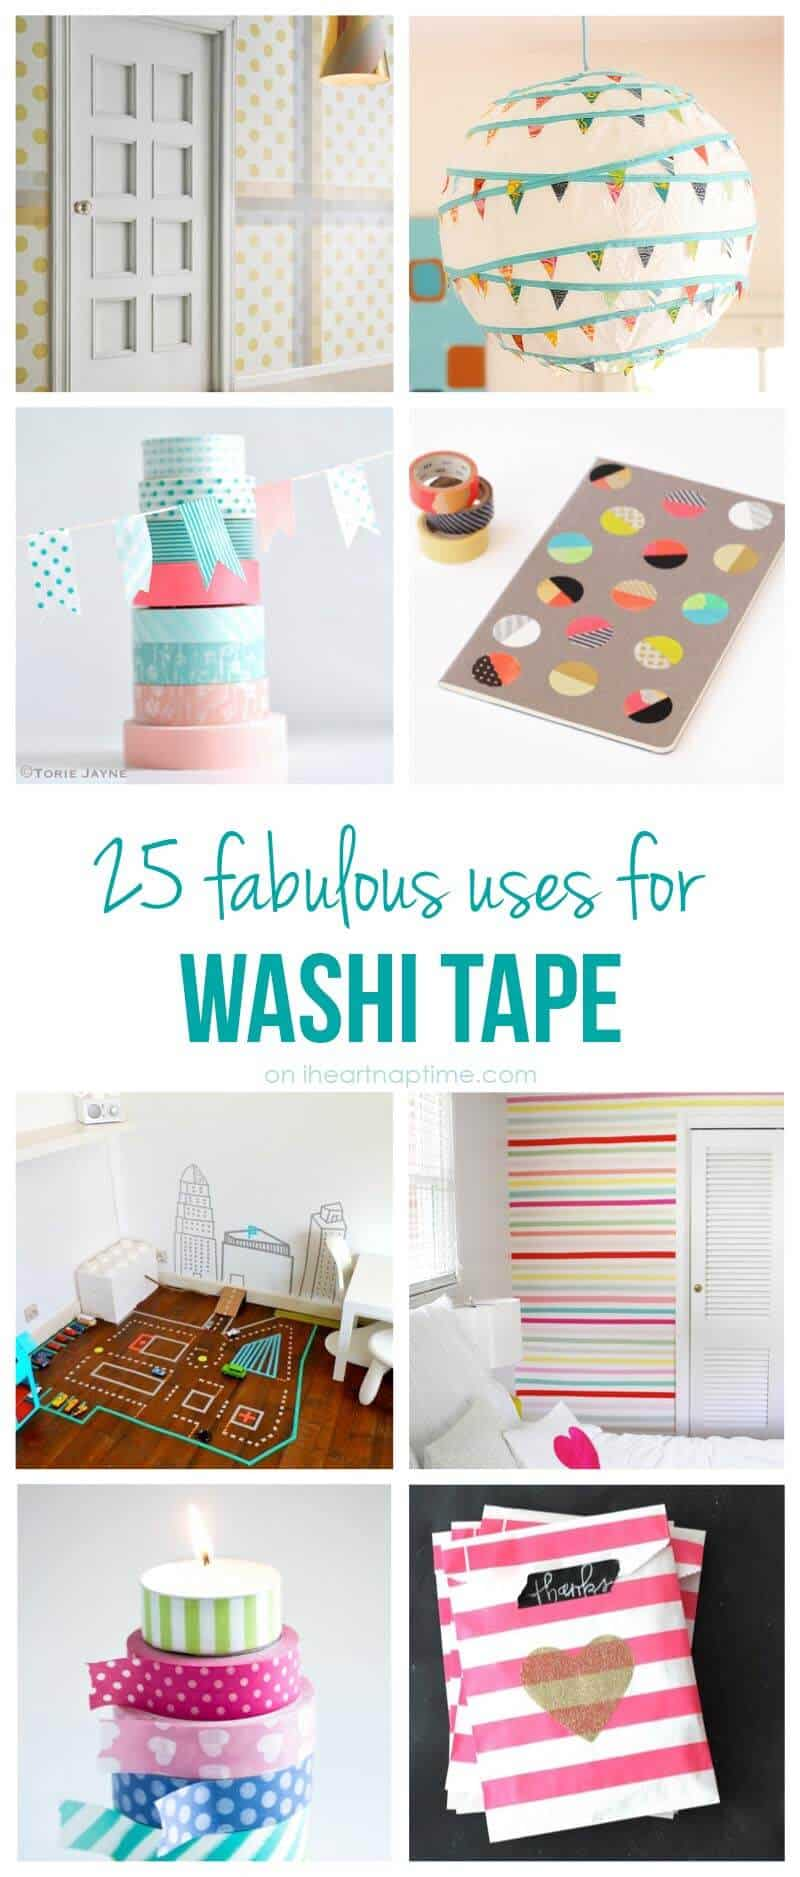 25 fabulous uses for washi tape